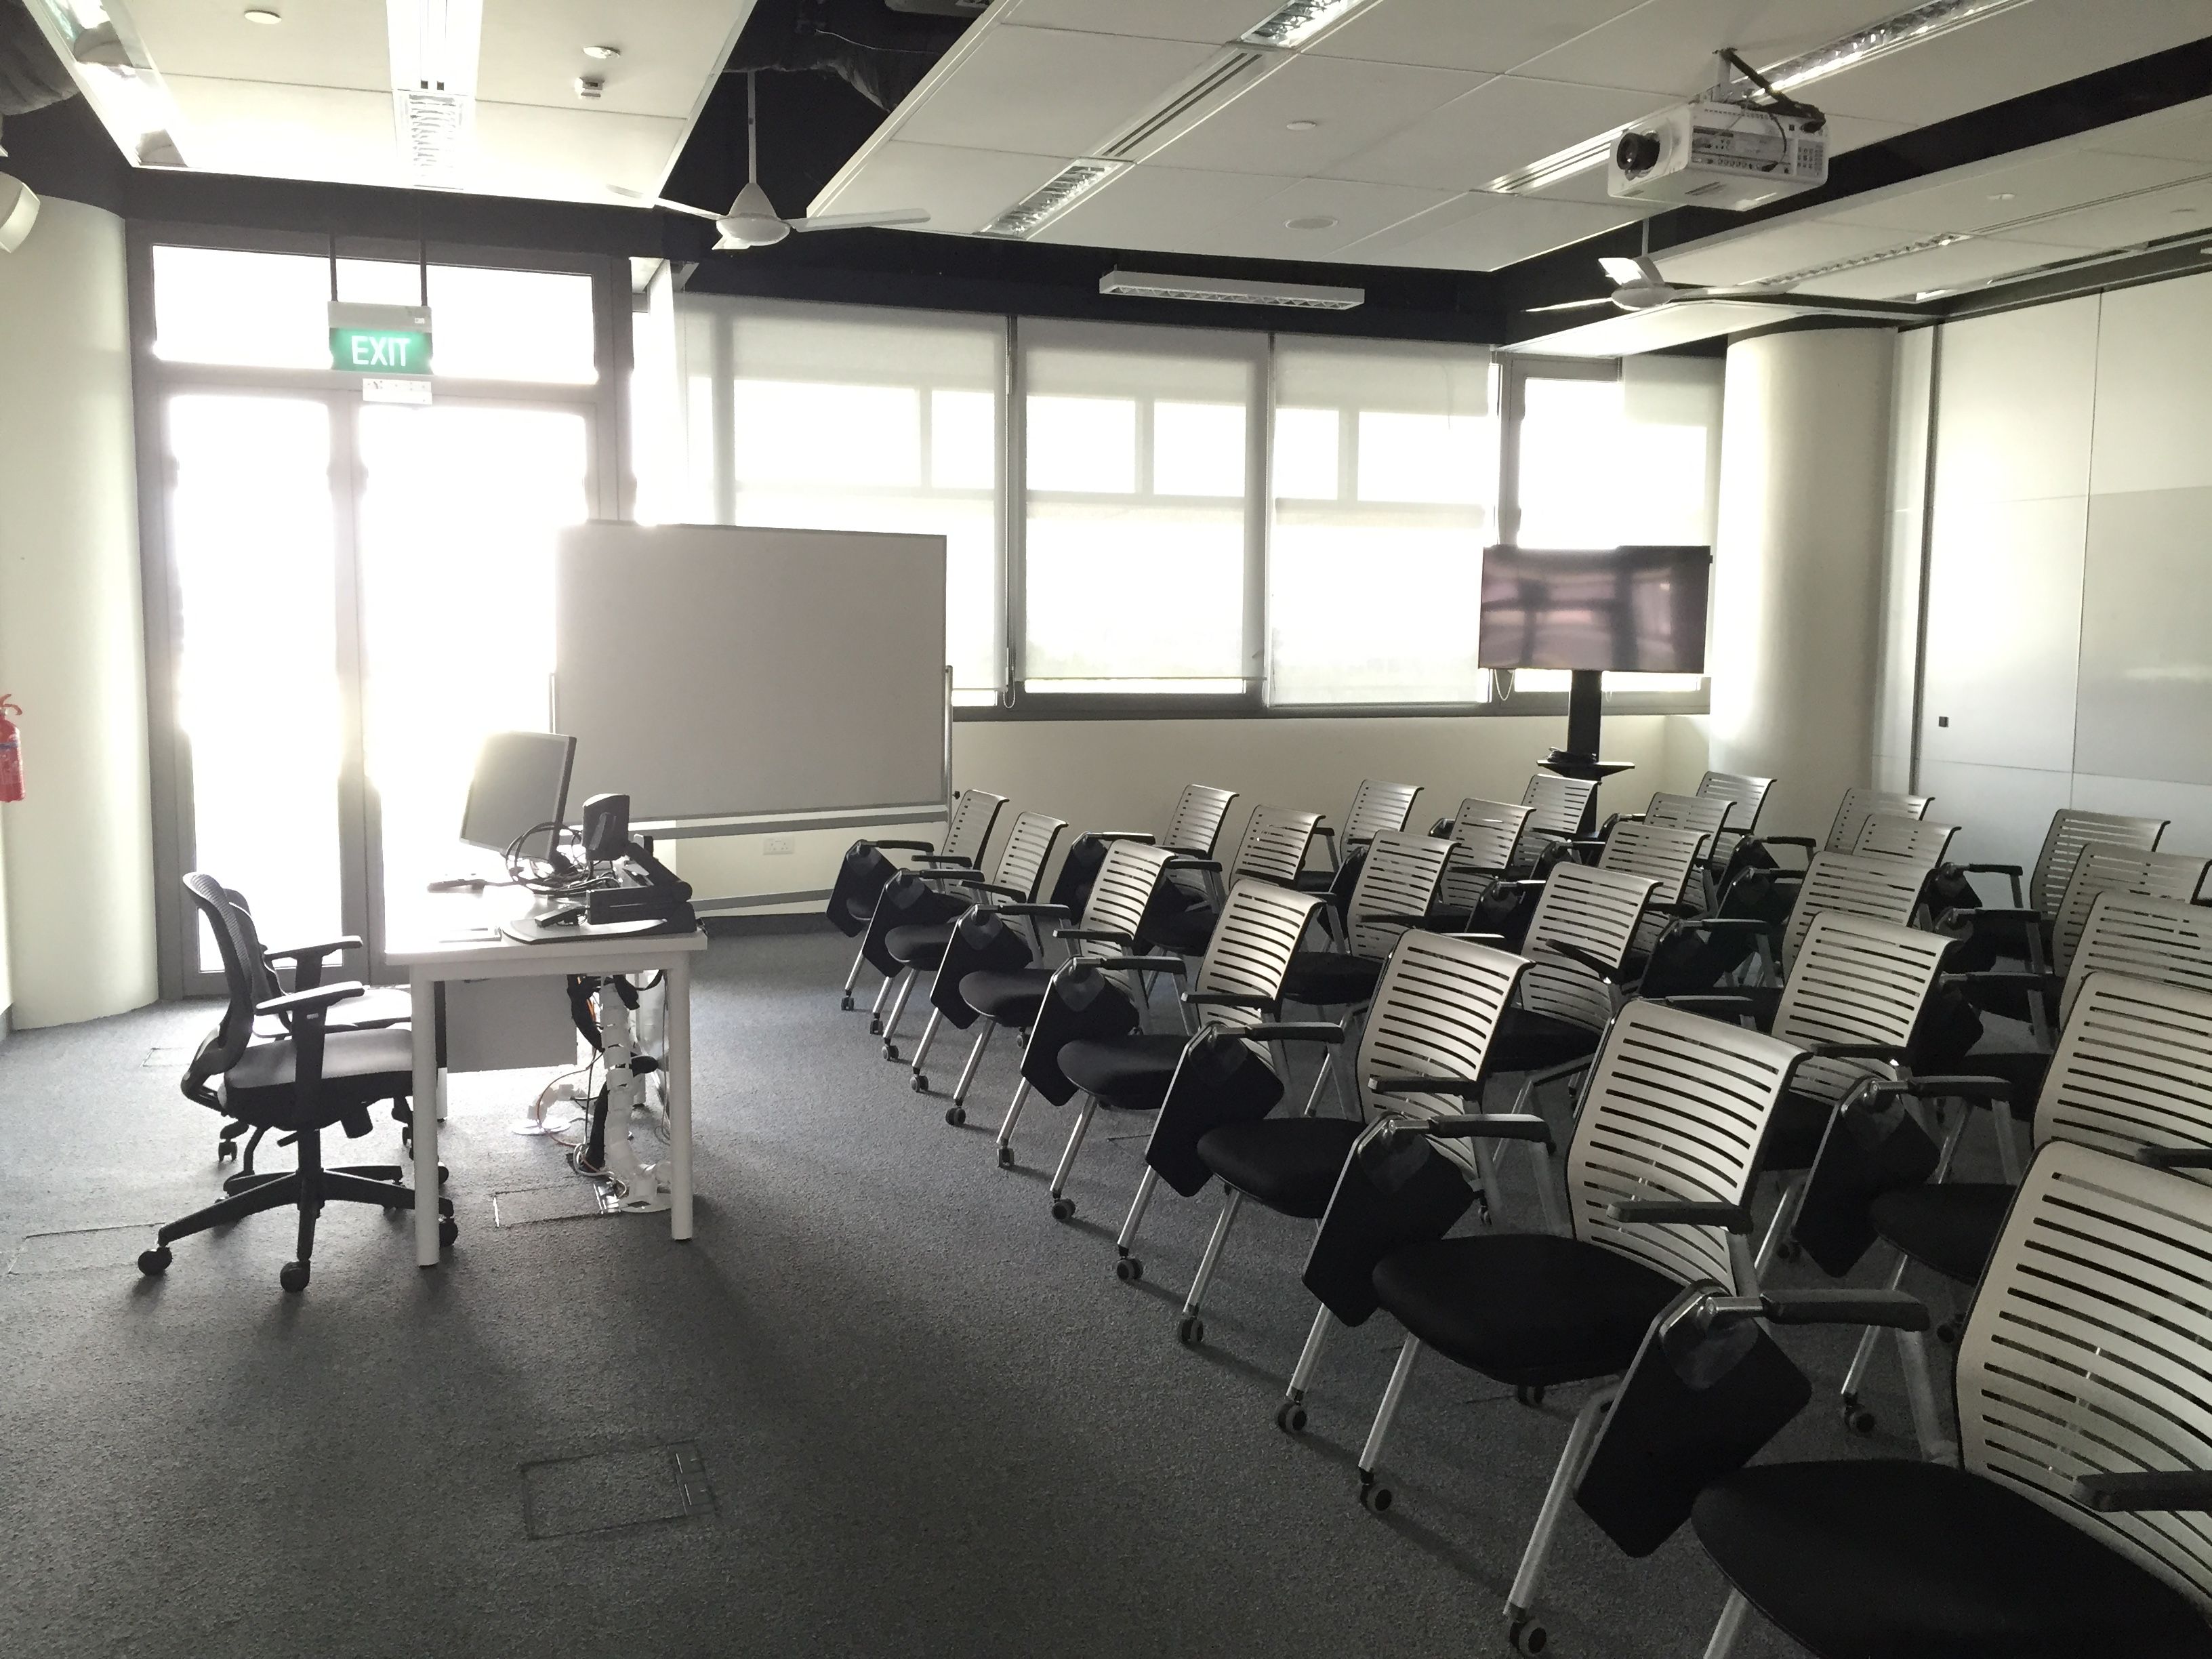 File:Seminar room, Singapore University of Technology and